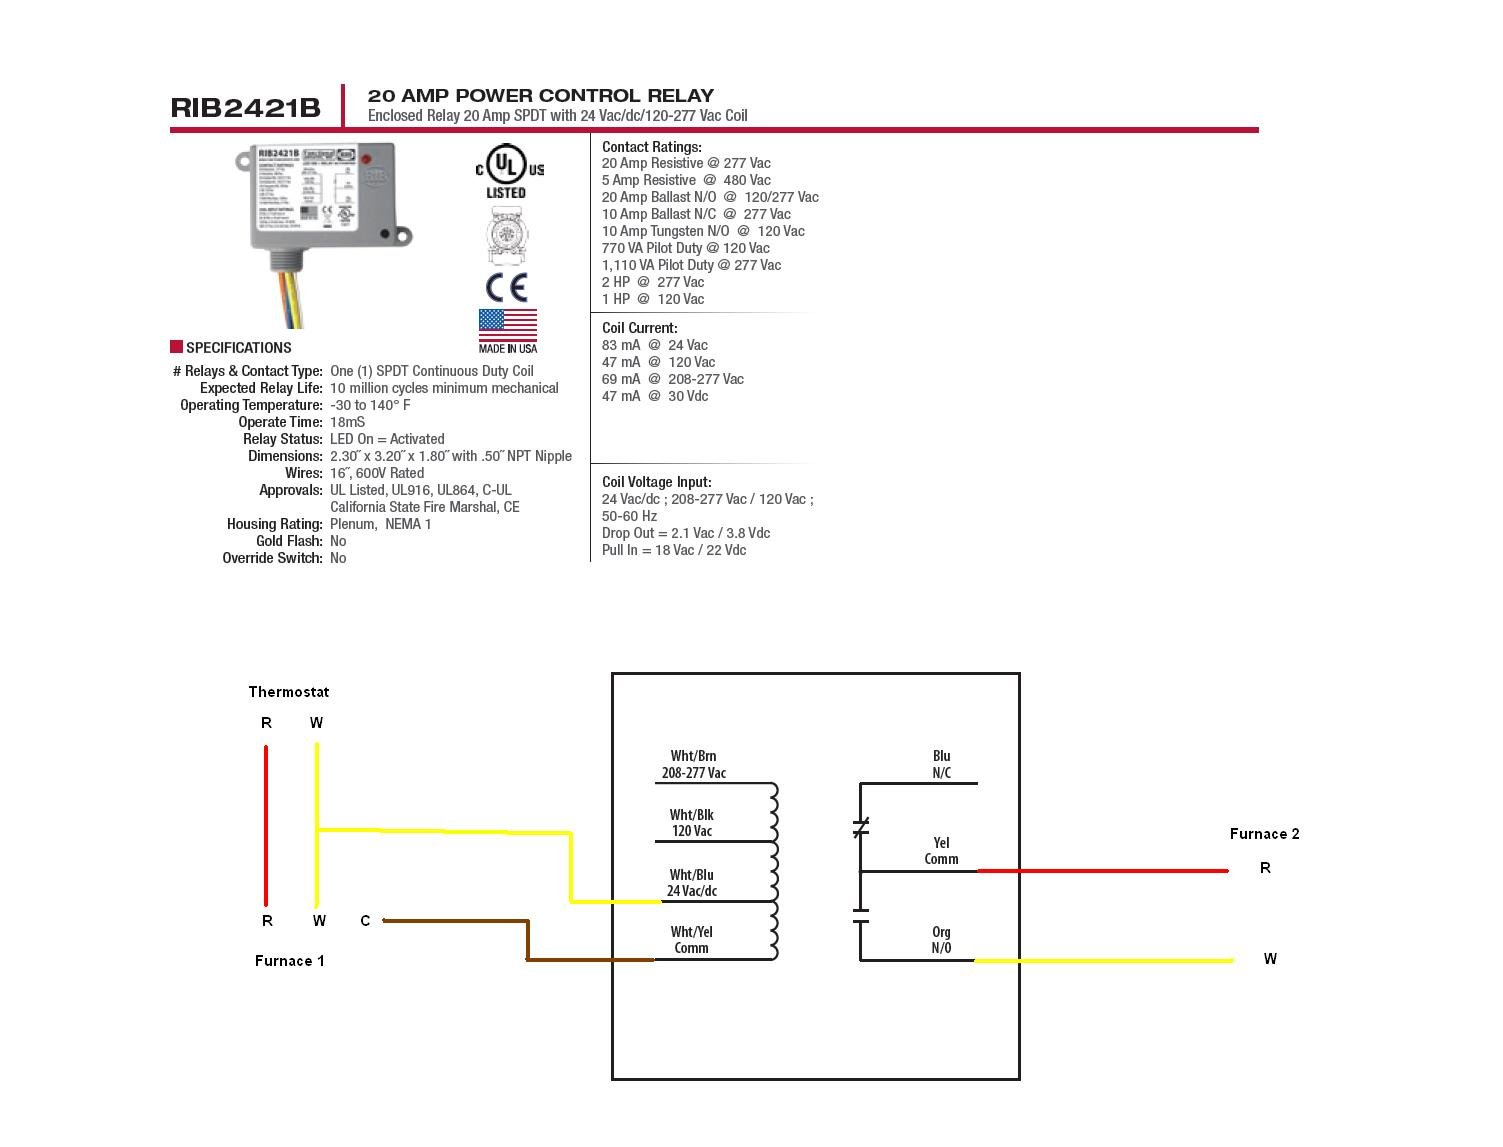 rib relay 2 wire thermostat wiring diagram touch screen radio ribu1c wiring diagram wiring diagrams and schematics 2009 12 30 011105 2furnacesrelaywiring ribu1c wiring diagram rib relay 2 wire thermostat wiring